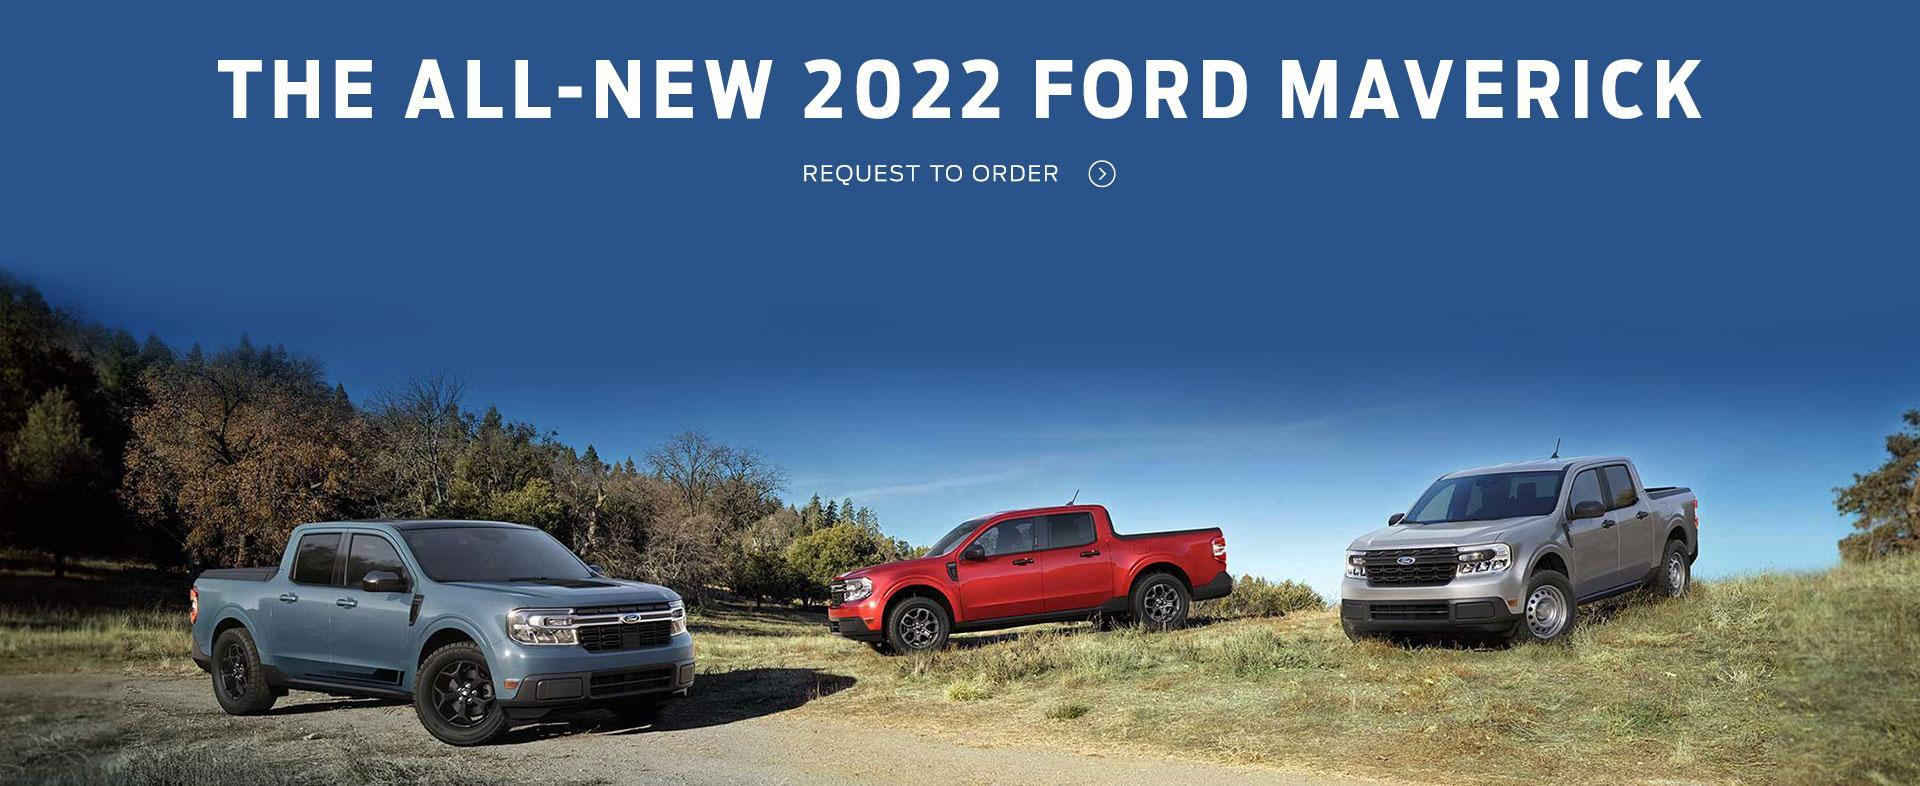 2022 Ford Maverick |  Ford of Canada